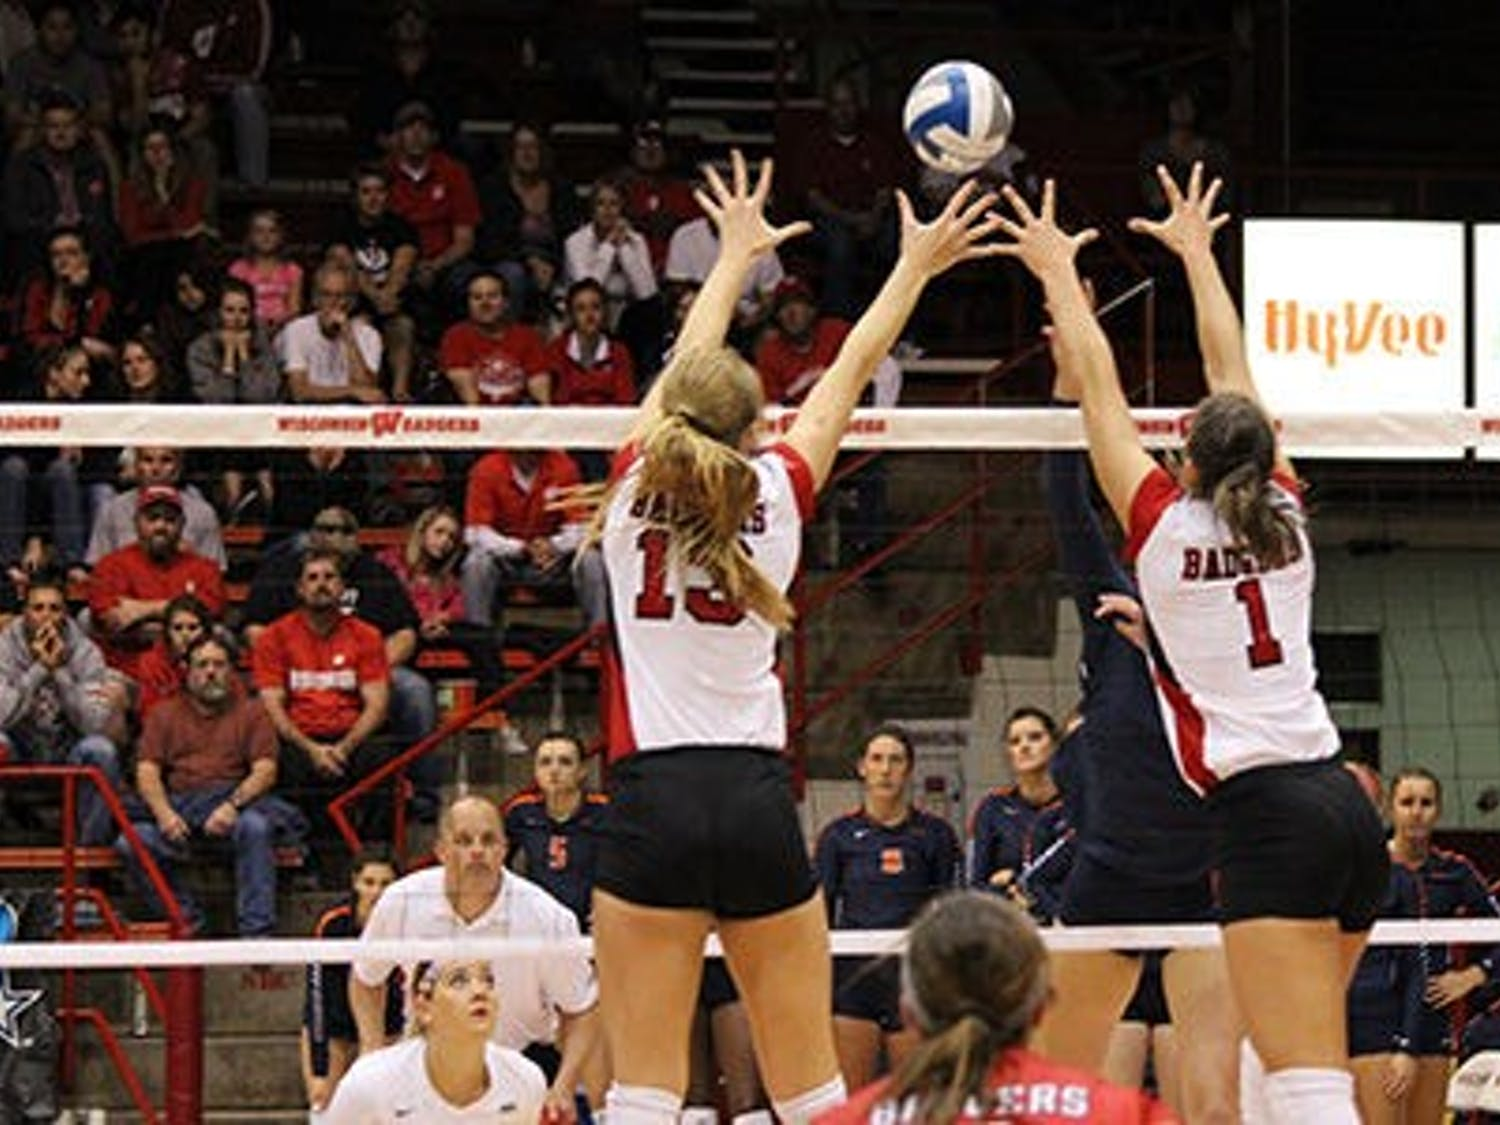 The Badgers are hoping to continue their success in the Big Ten against Rutgers and Illinois this week.